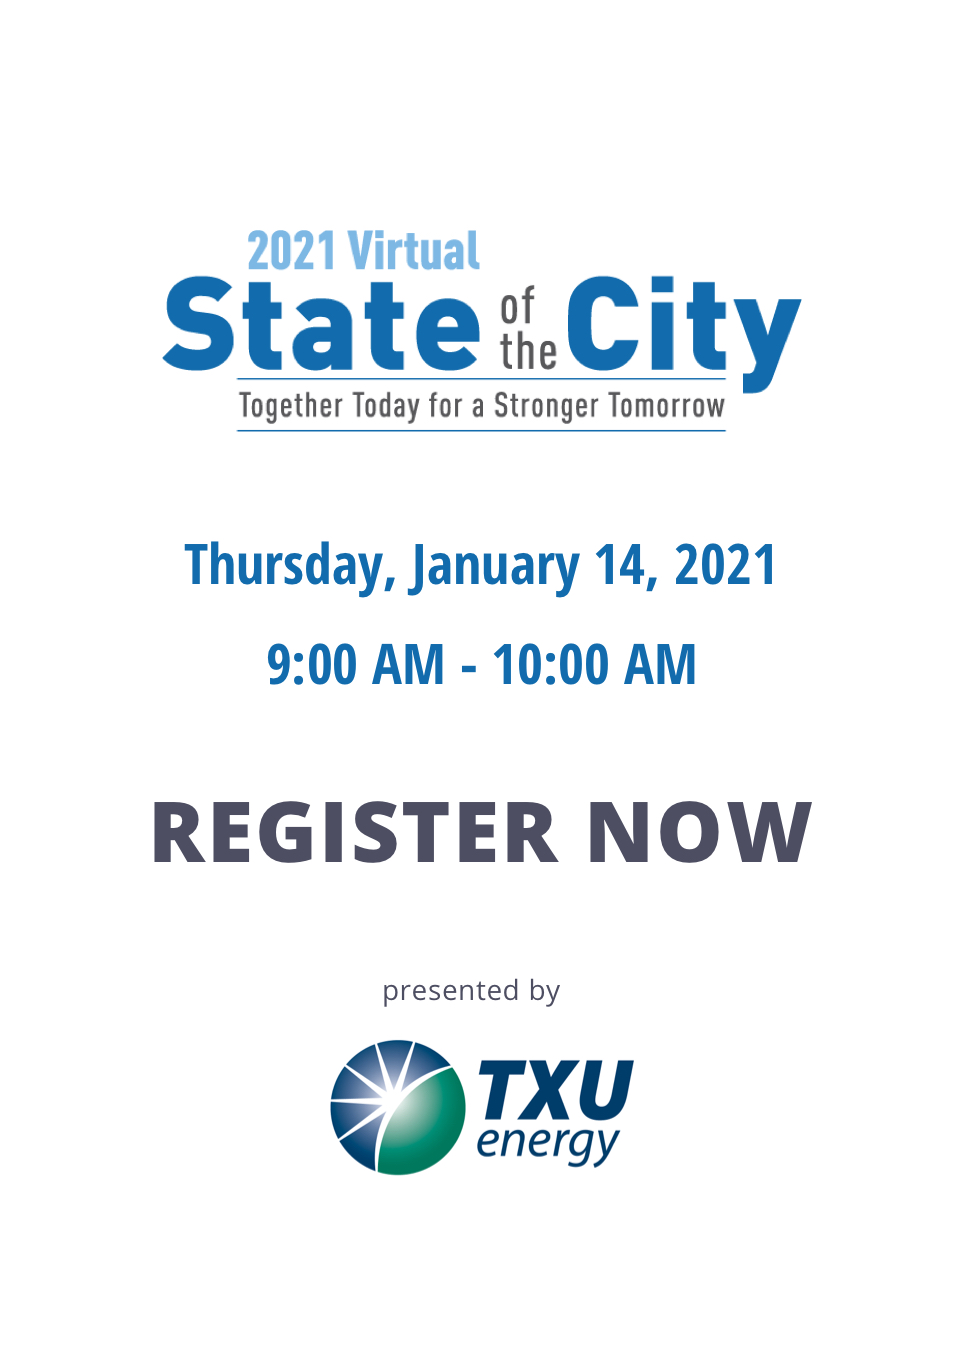 2021 Virtual State of the City